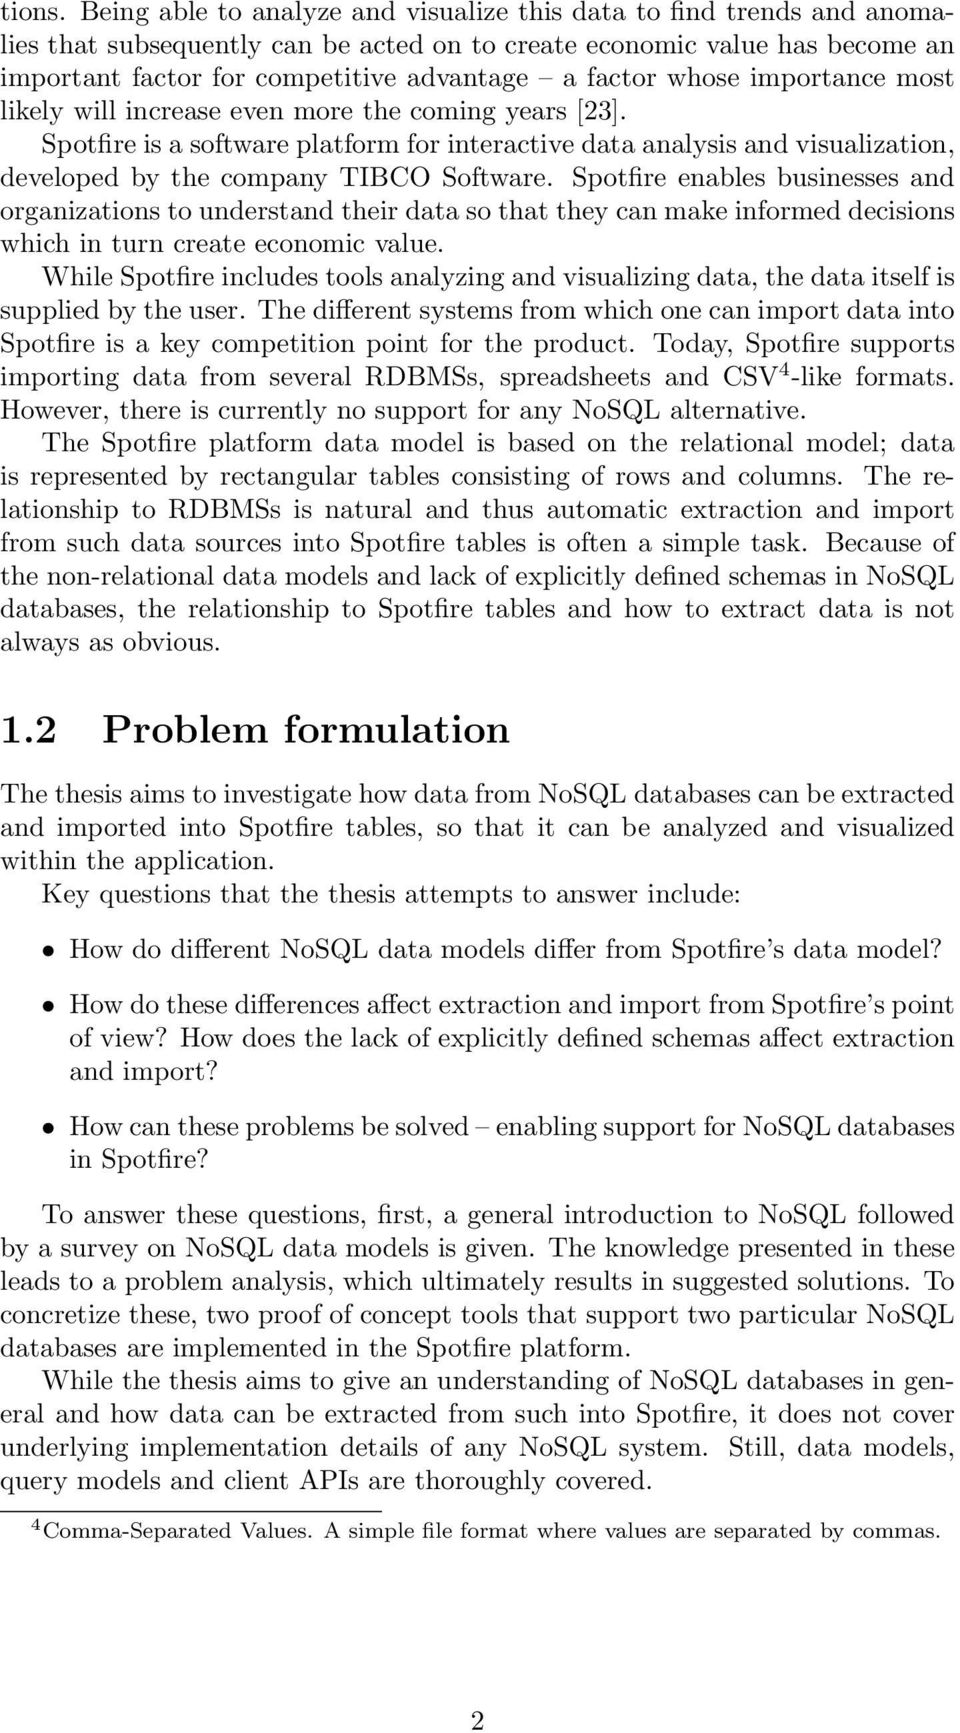 nosql databases thesis A comparison of nosql time series databases - kevin rudolph - research paper (undergraduate) - engineering - industrial engineering and management - publish your bachelor's or master's thesis, dissertation, term paper or essay.